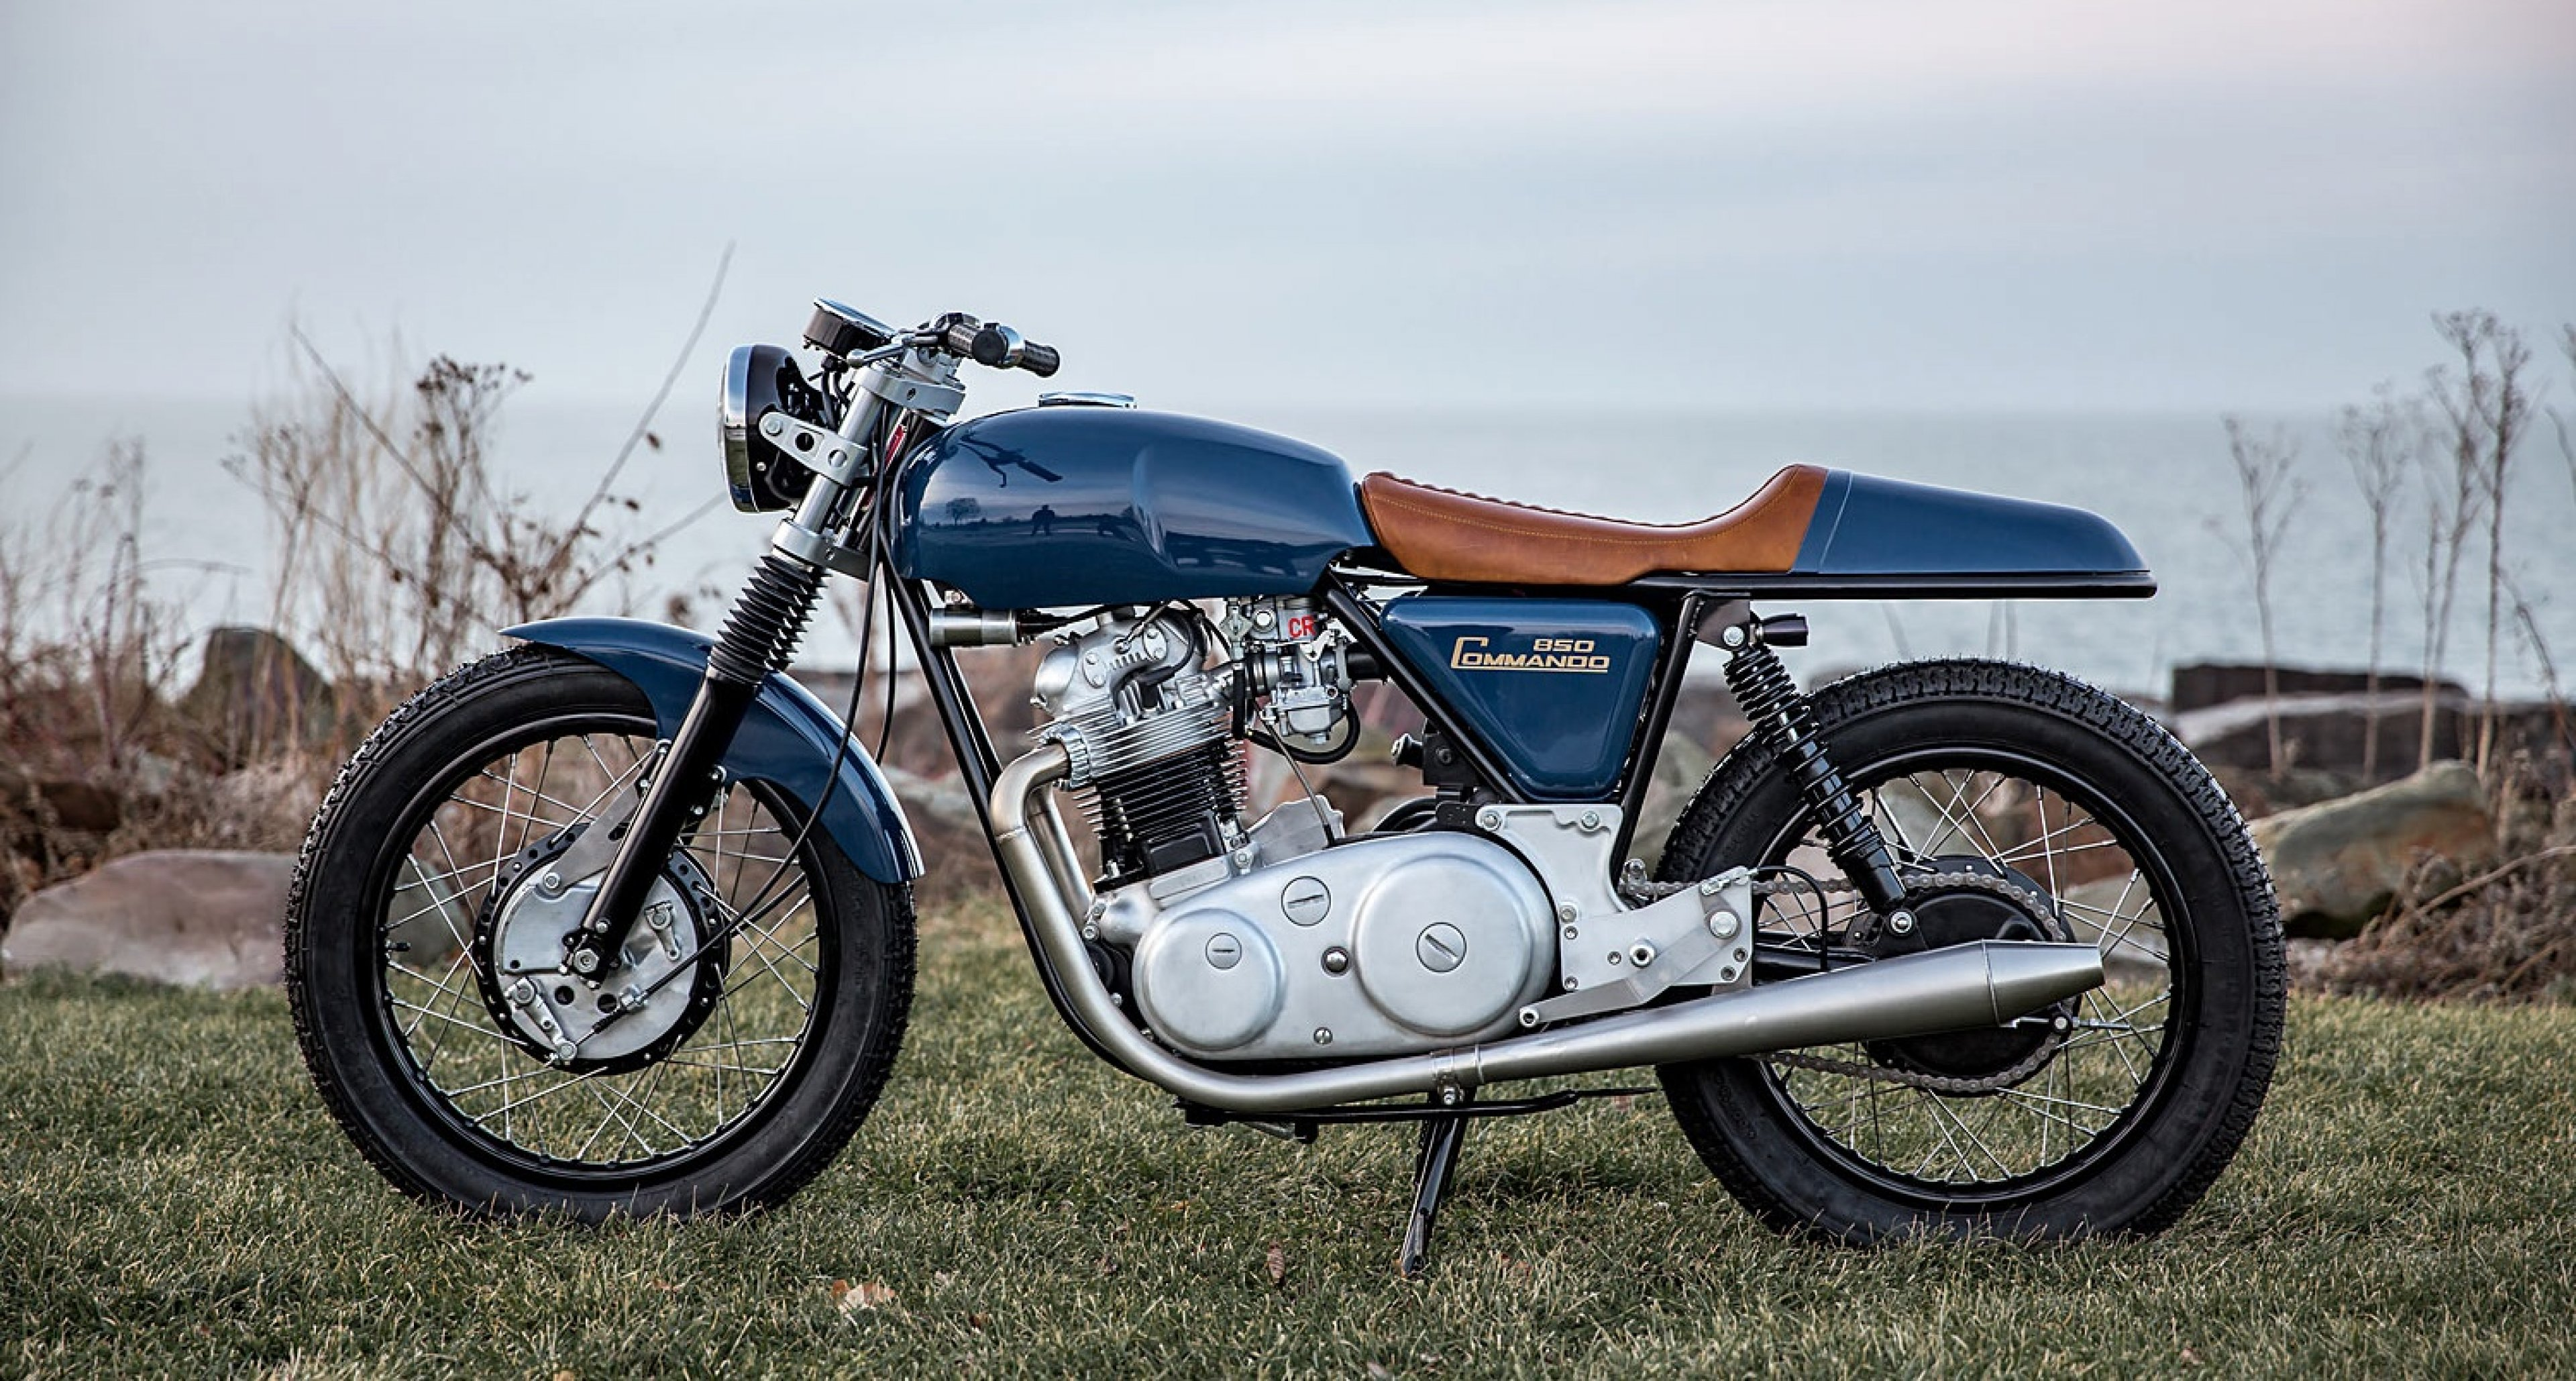 This Custom Norton Commando Is A Lesson In Restraint